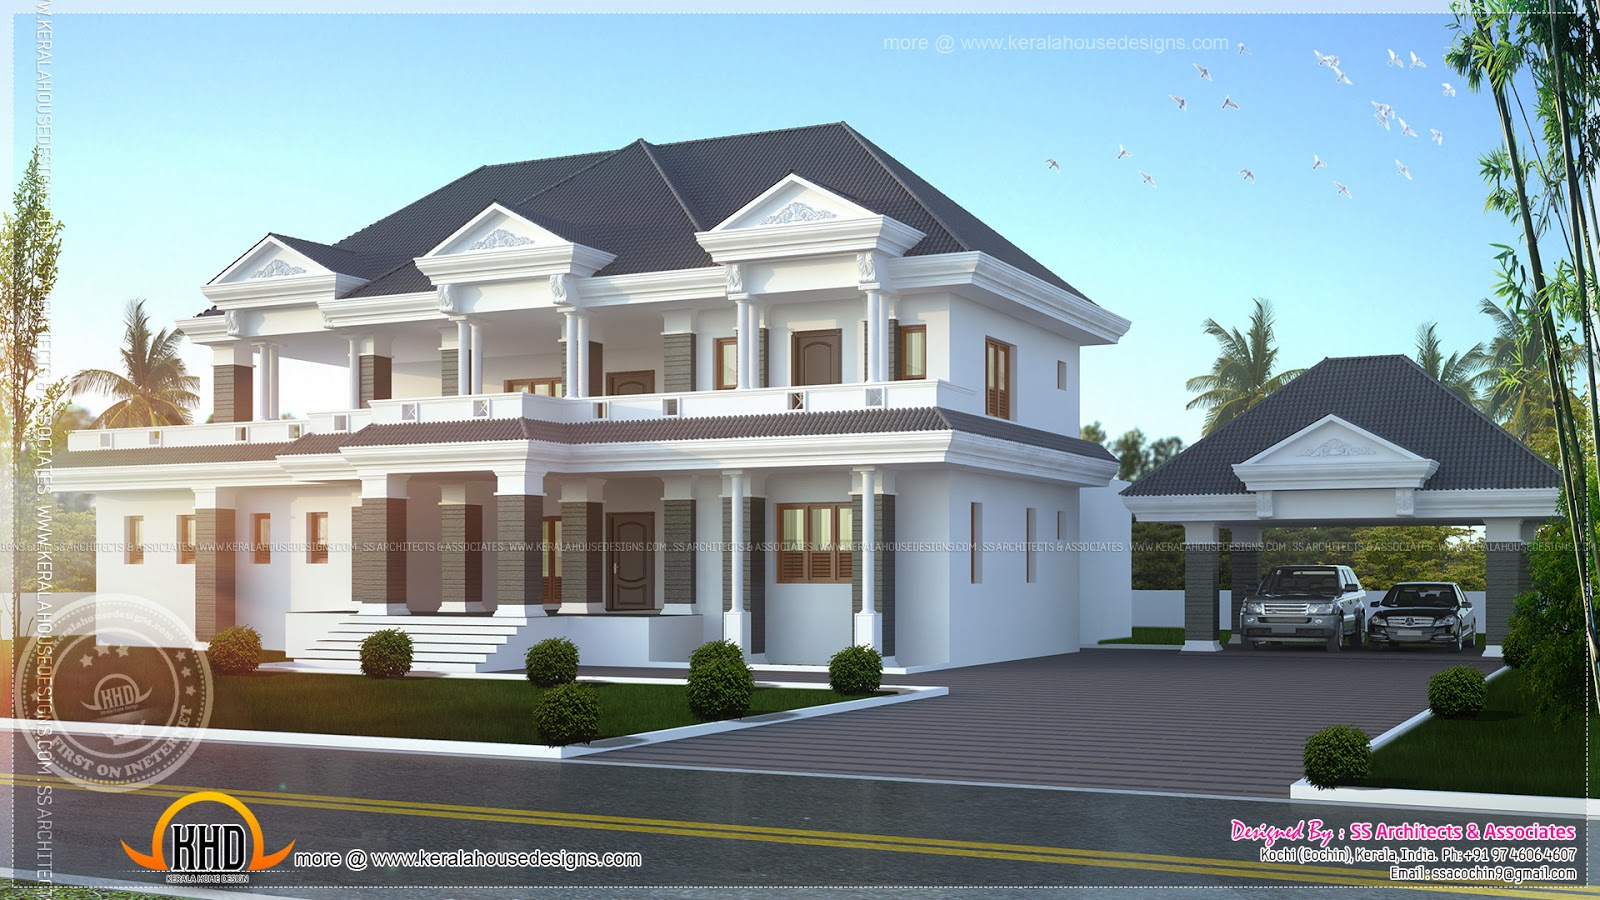 Modern super luxury home design - Kerala home design and floor plans